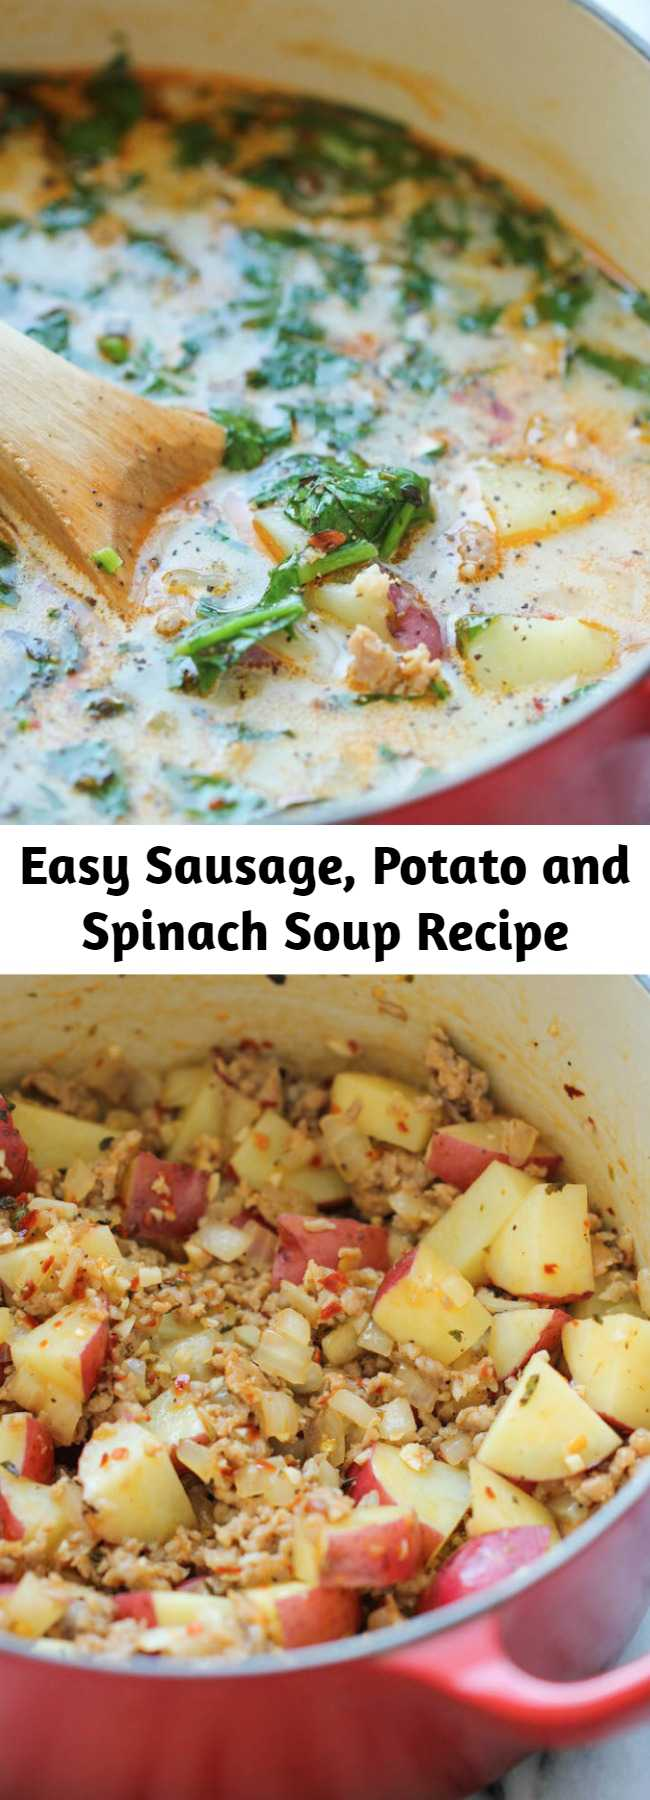 Easy Sausage, Potato and Spinach Soup Recipe - A hearty, comforting soup that's so easy and simple to make, loaded with tons of fiber and flavor!